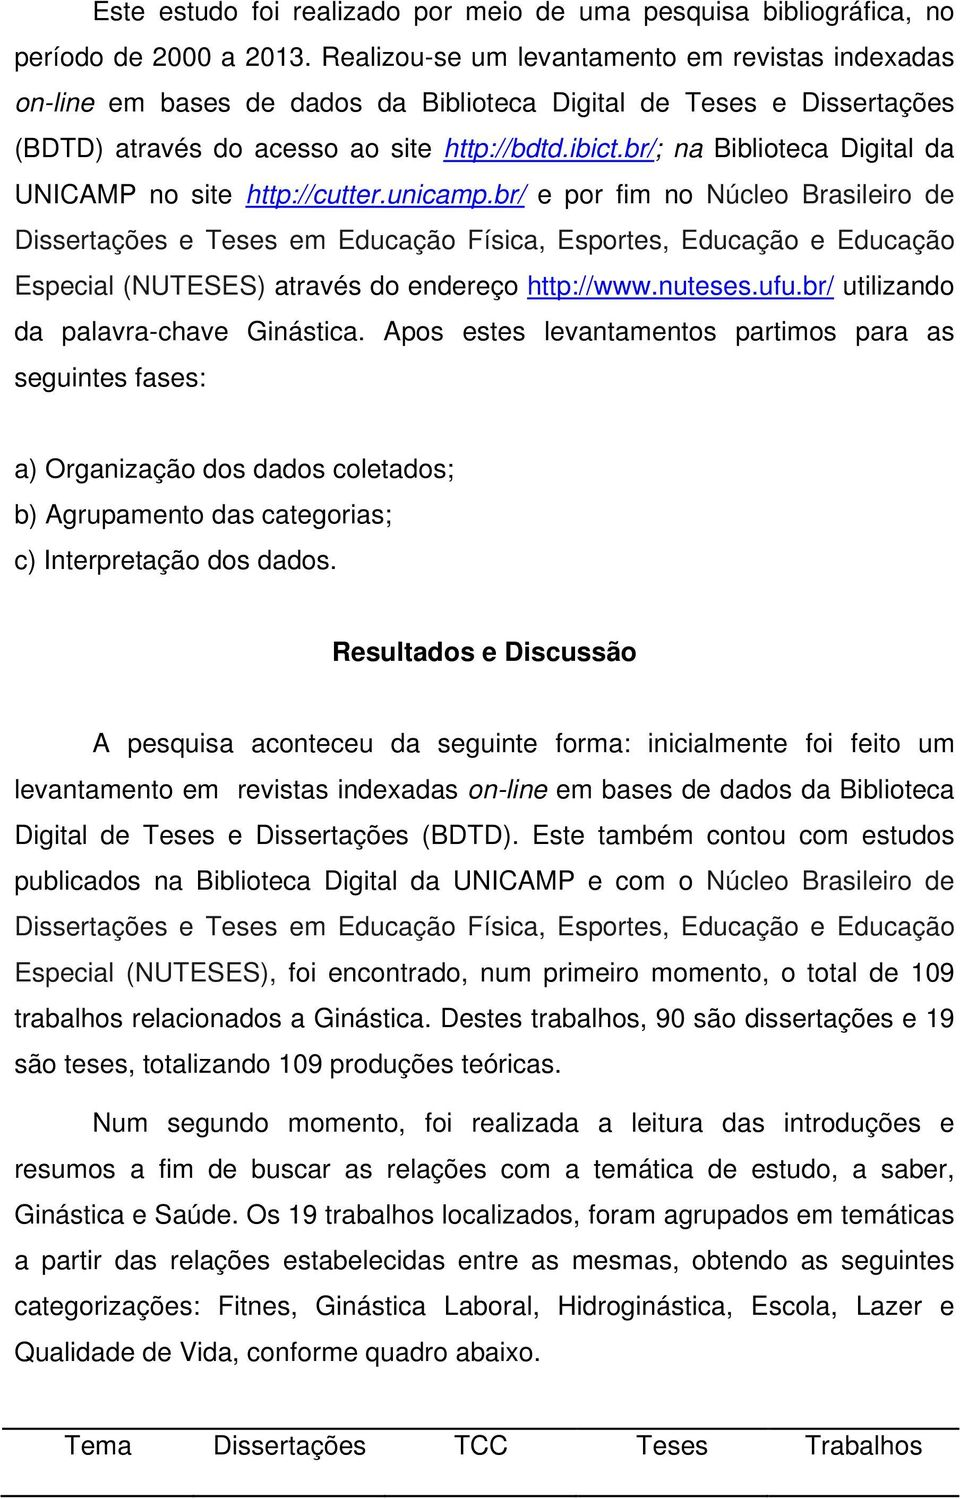 br/; na Biblioteca Digital da UNICAMP no site http://cutter.unicamp.